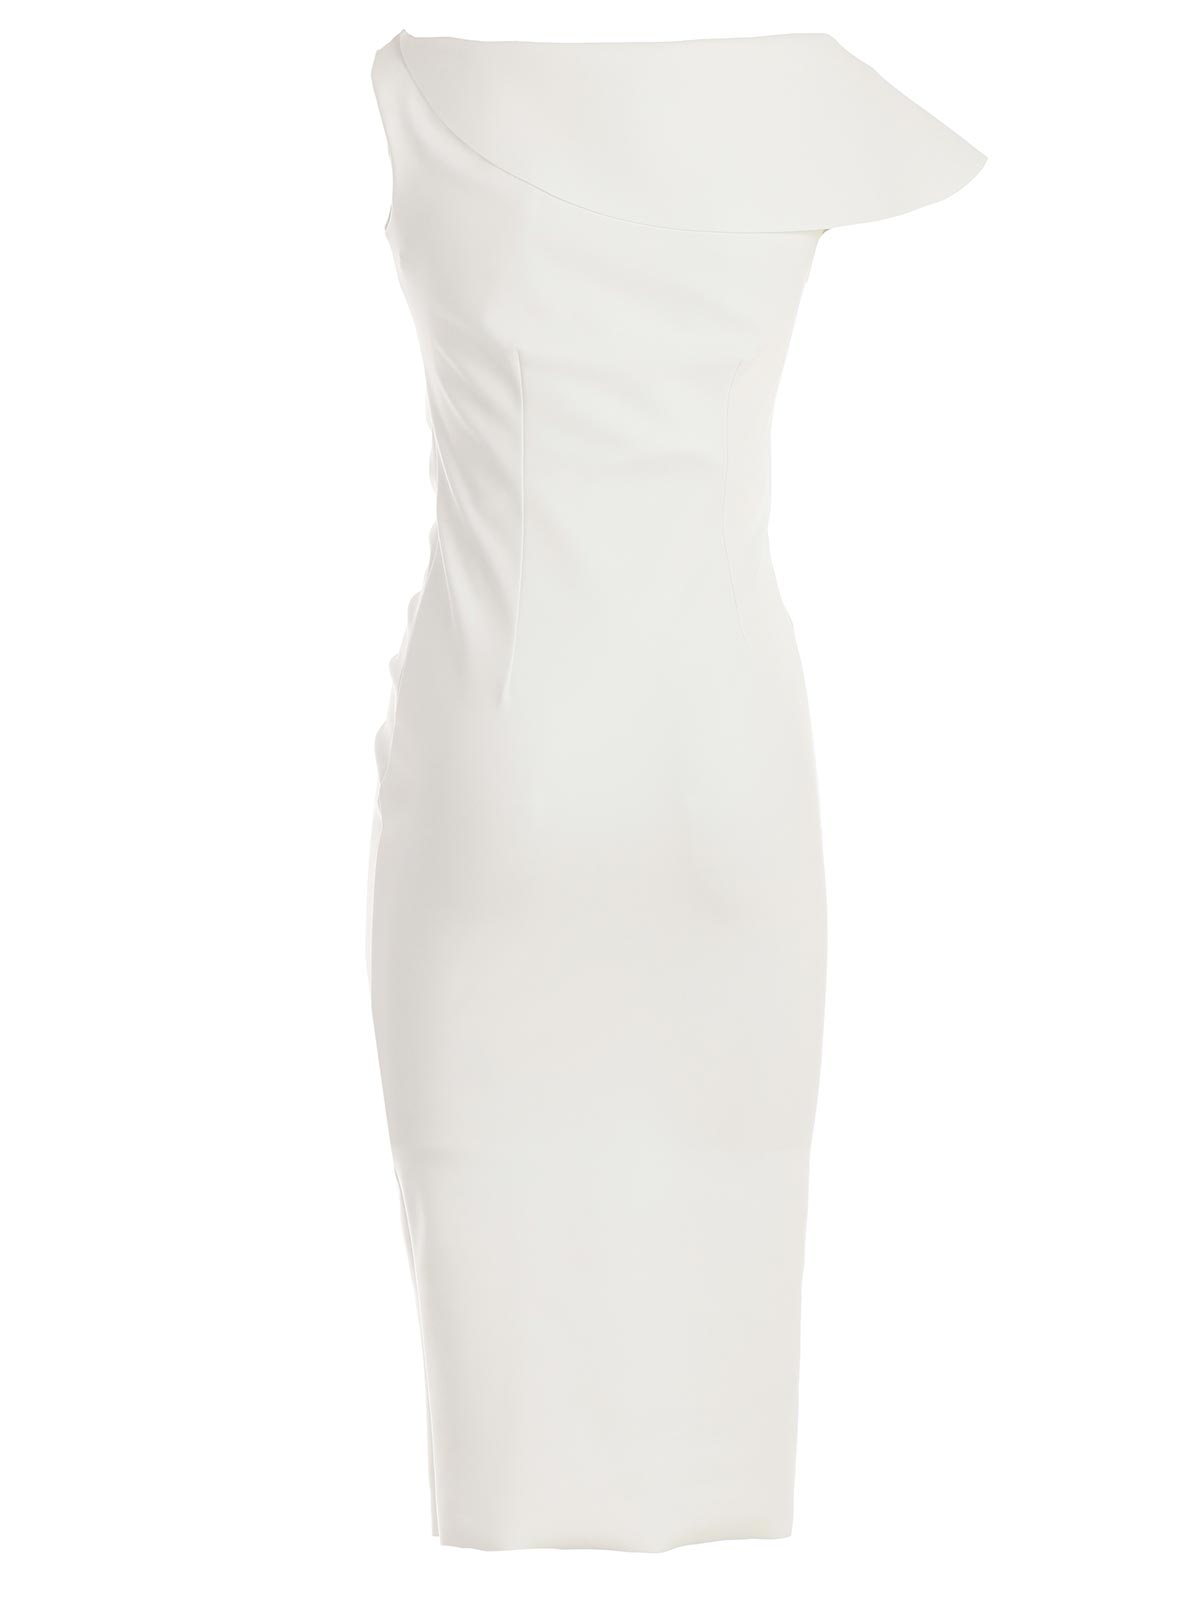 Picture of Chiara Boni La Petite Robe Dress